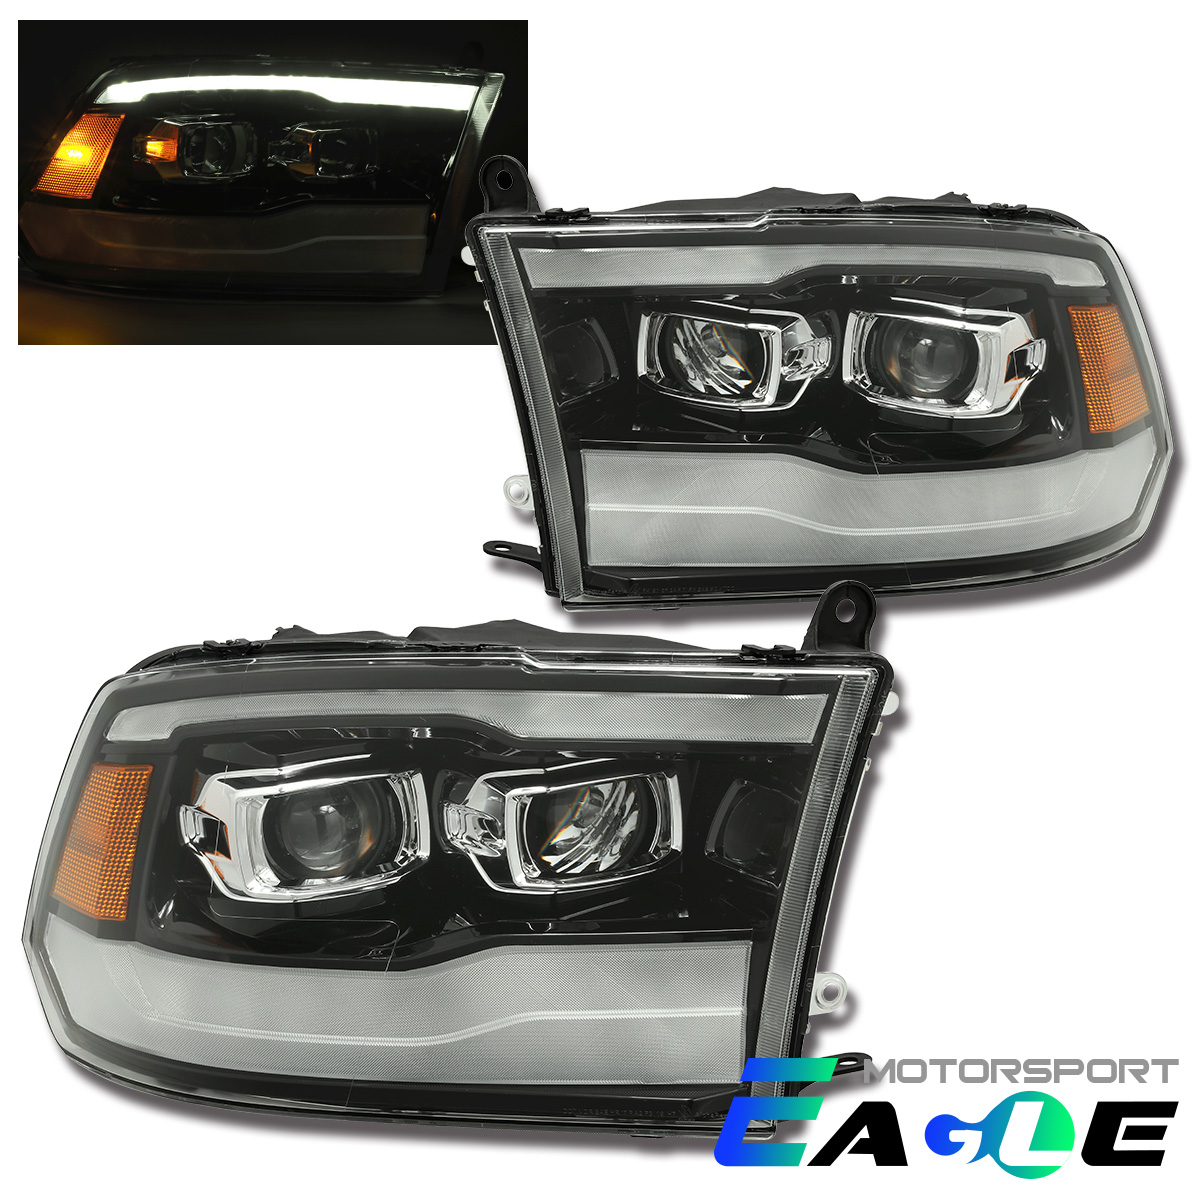 2019 Style Led Drl Projector Headlights For 2009 2018 Dodge Ram 1500 2500 3500 Ebay